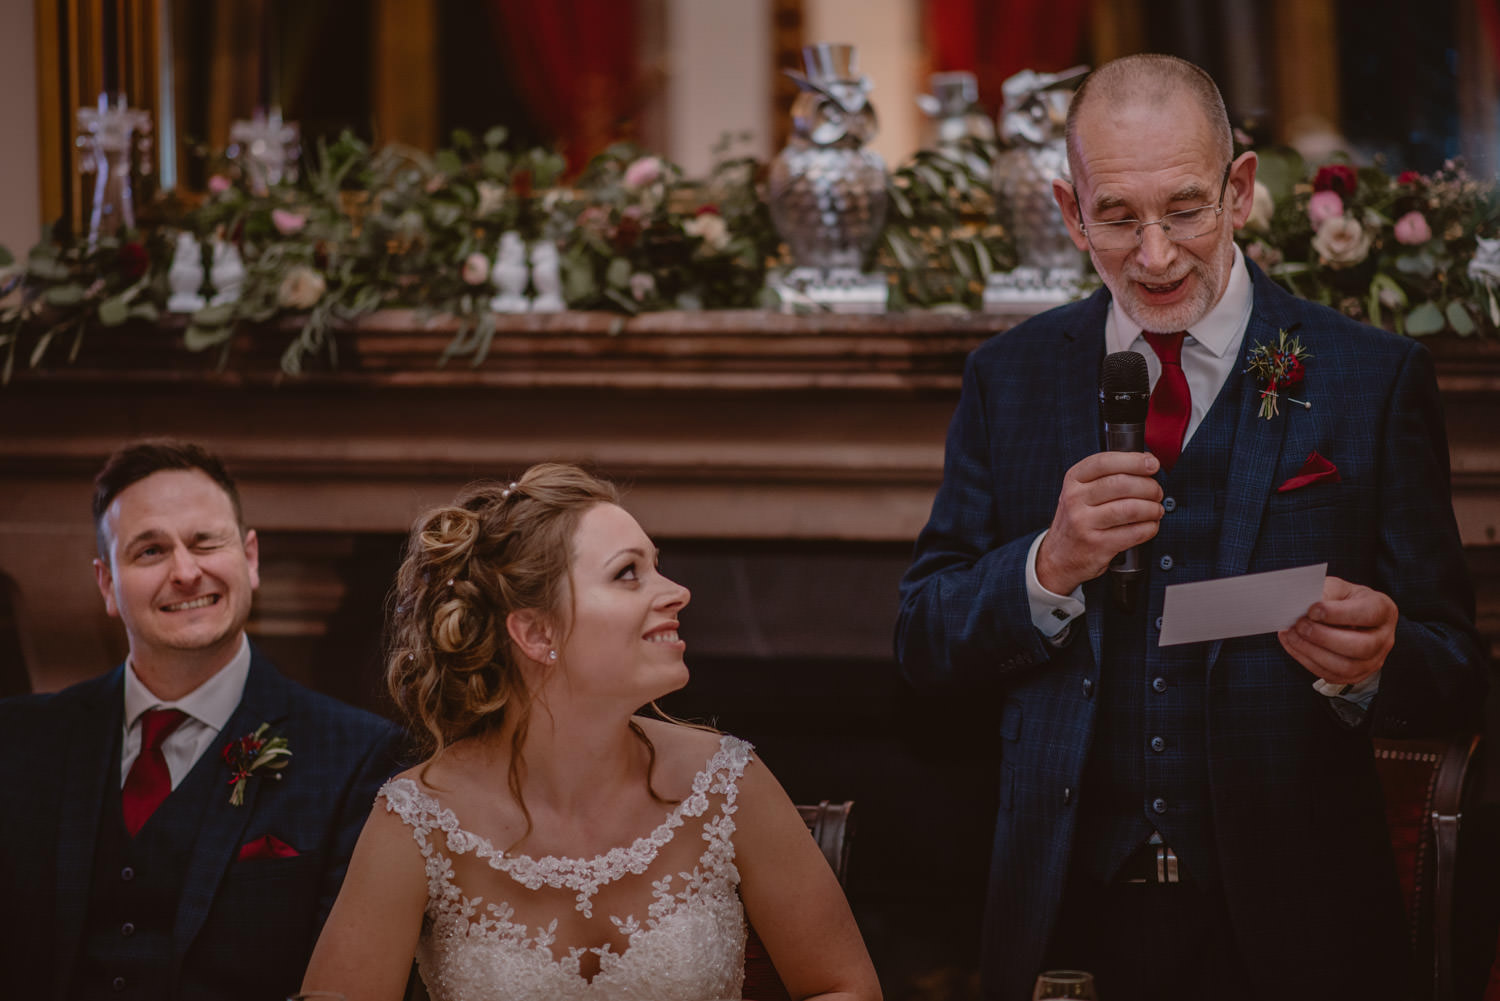 Emotional bride listening to her father's speech on her wedding day at Peckforton Castle